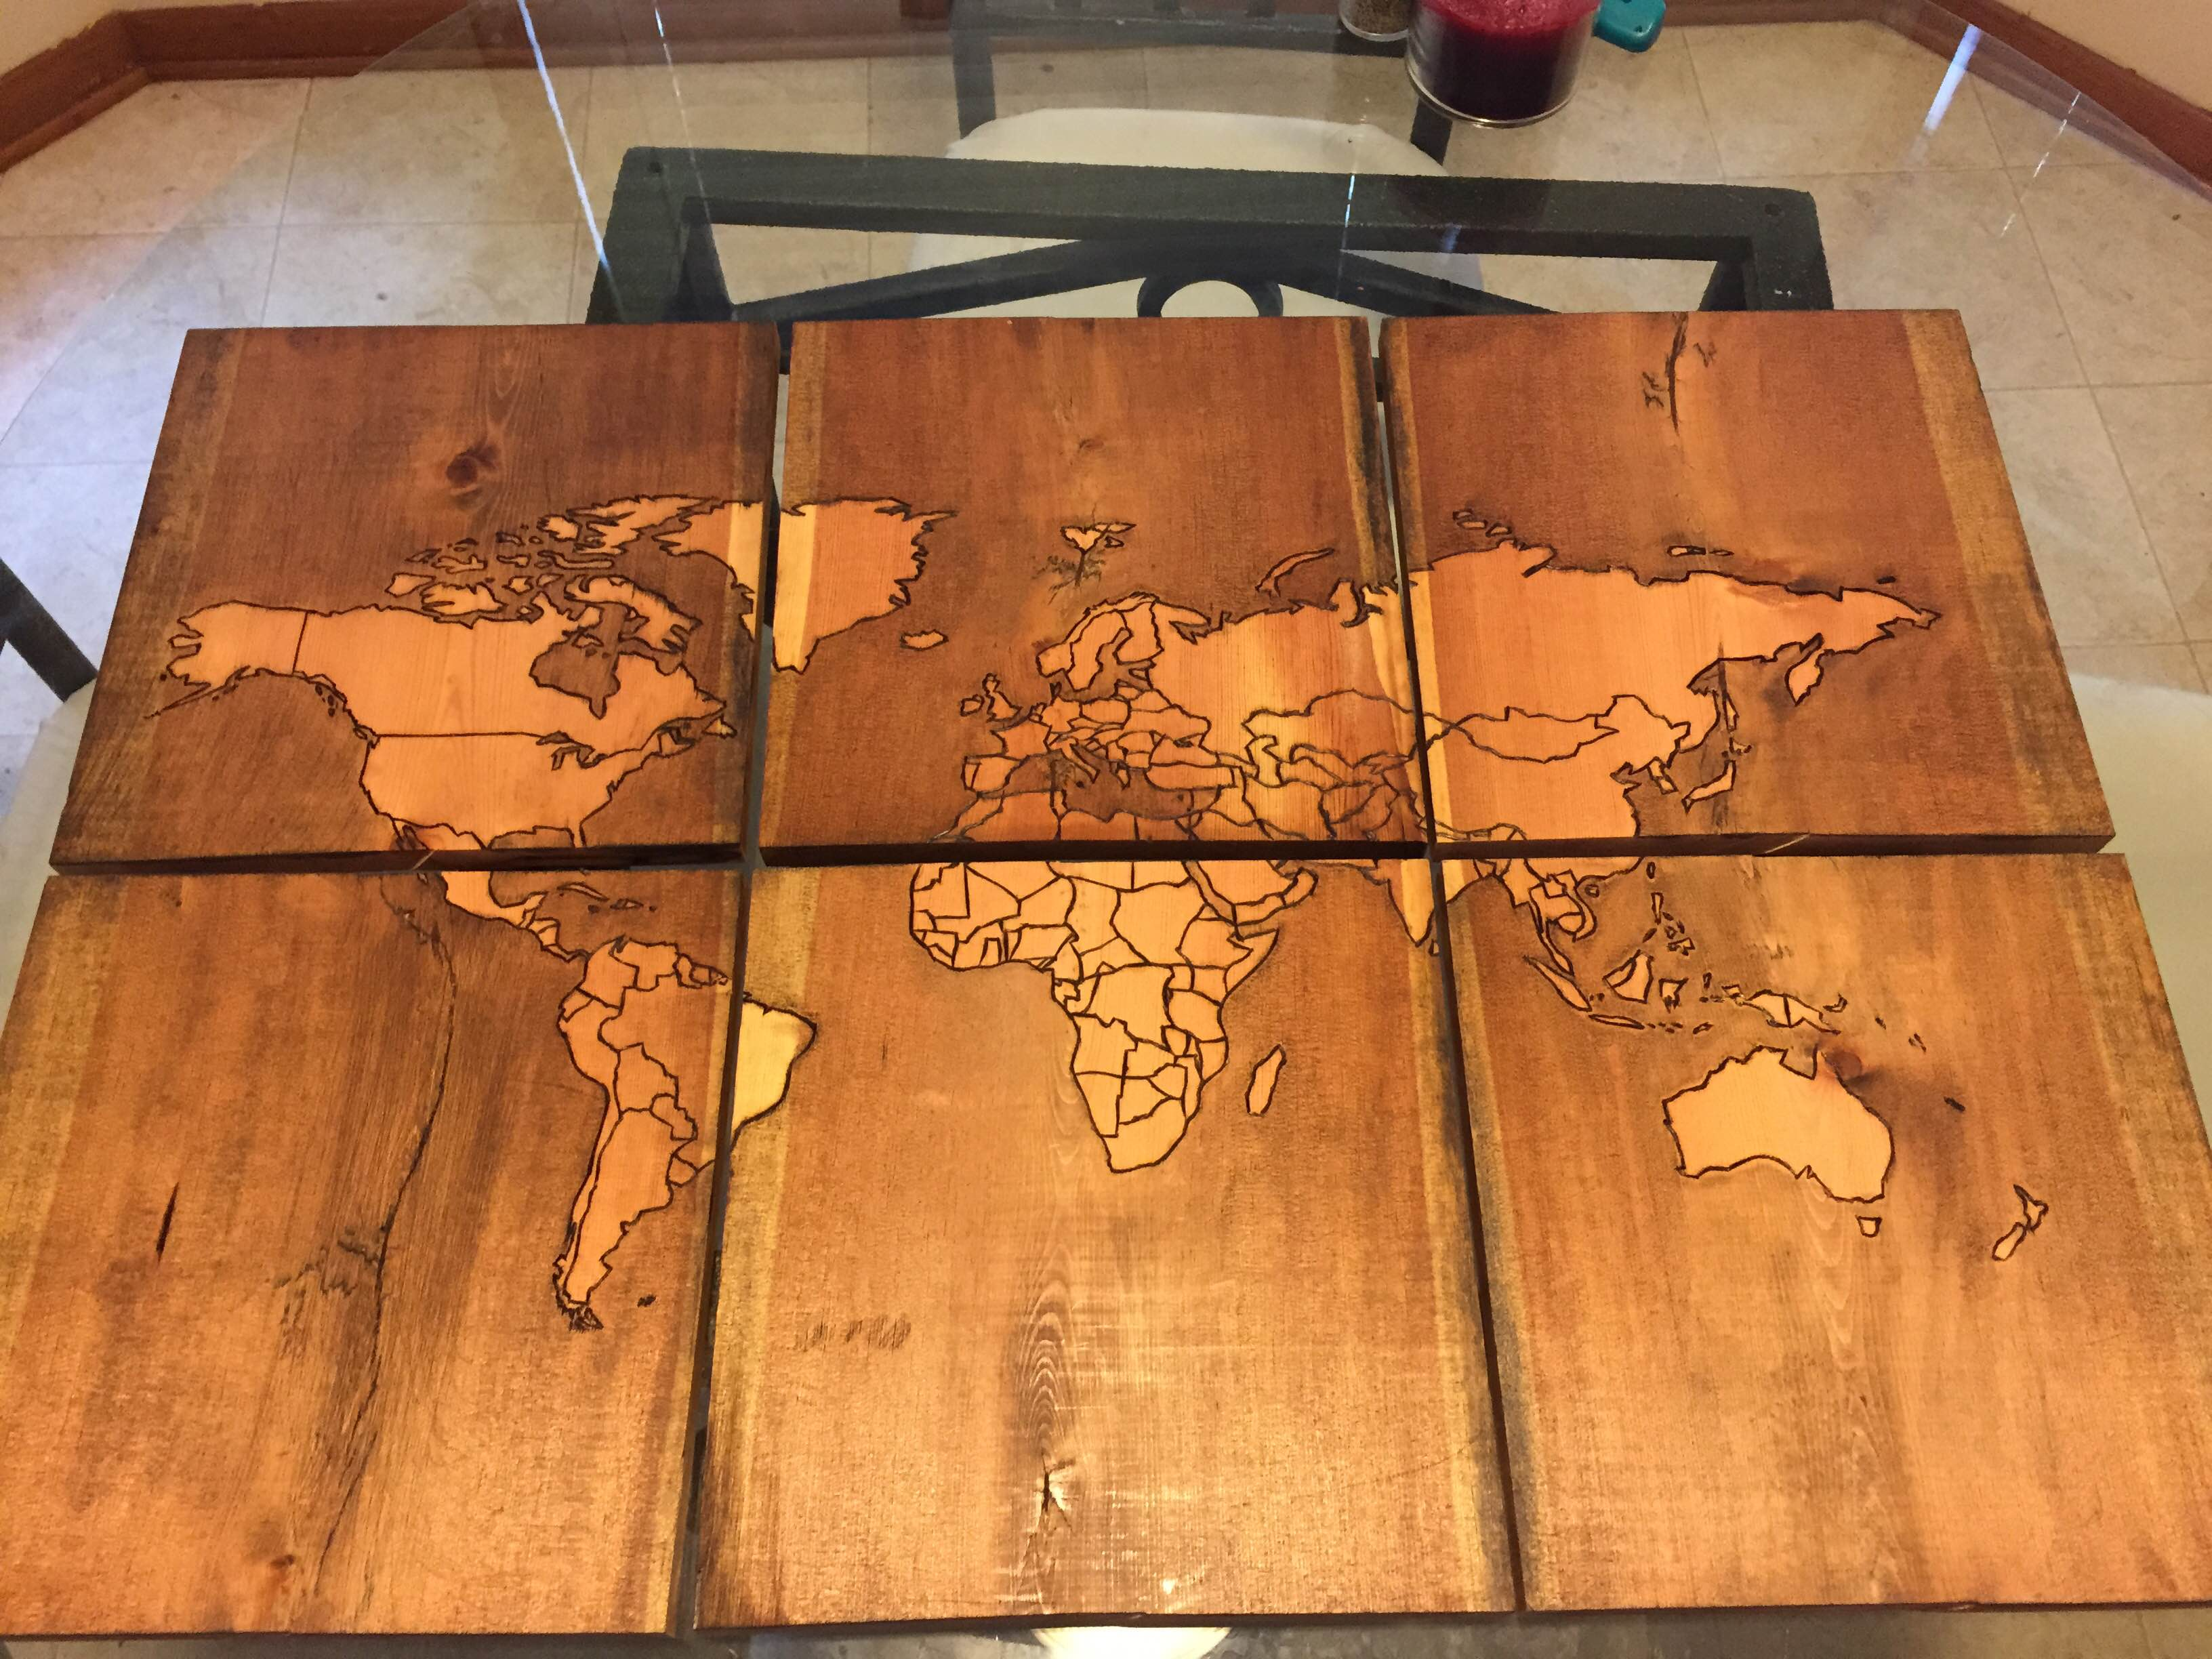 Beautiful Map of the World Burned Into Scrap Wood